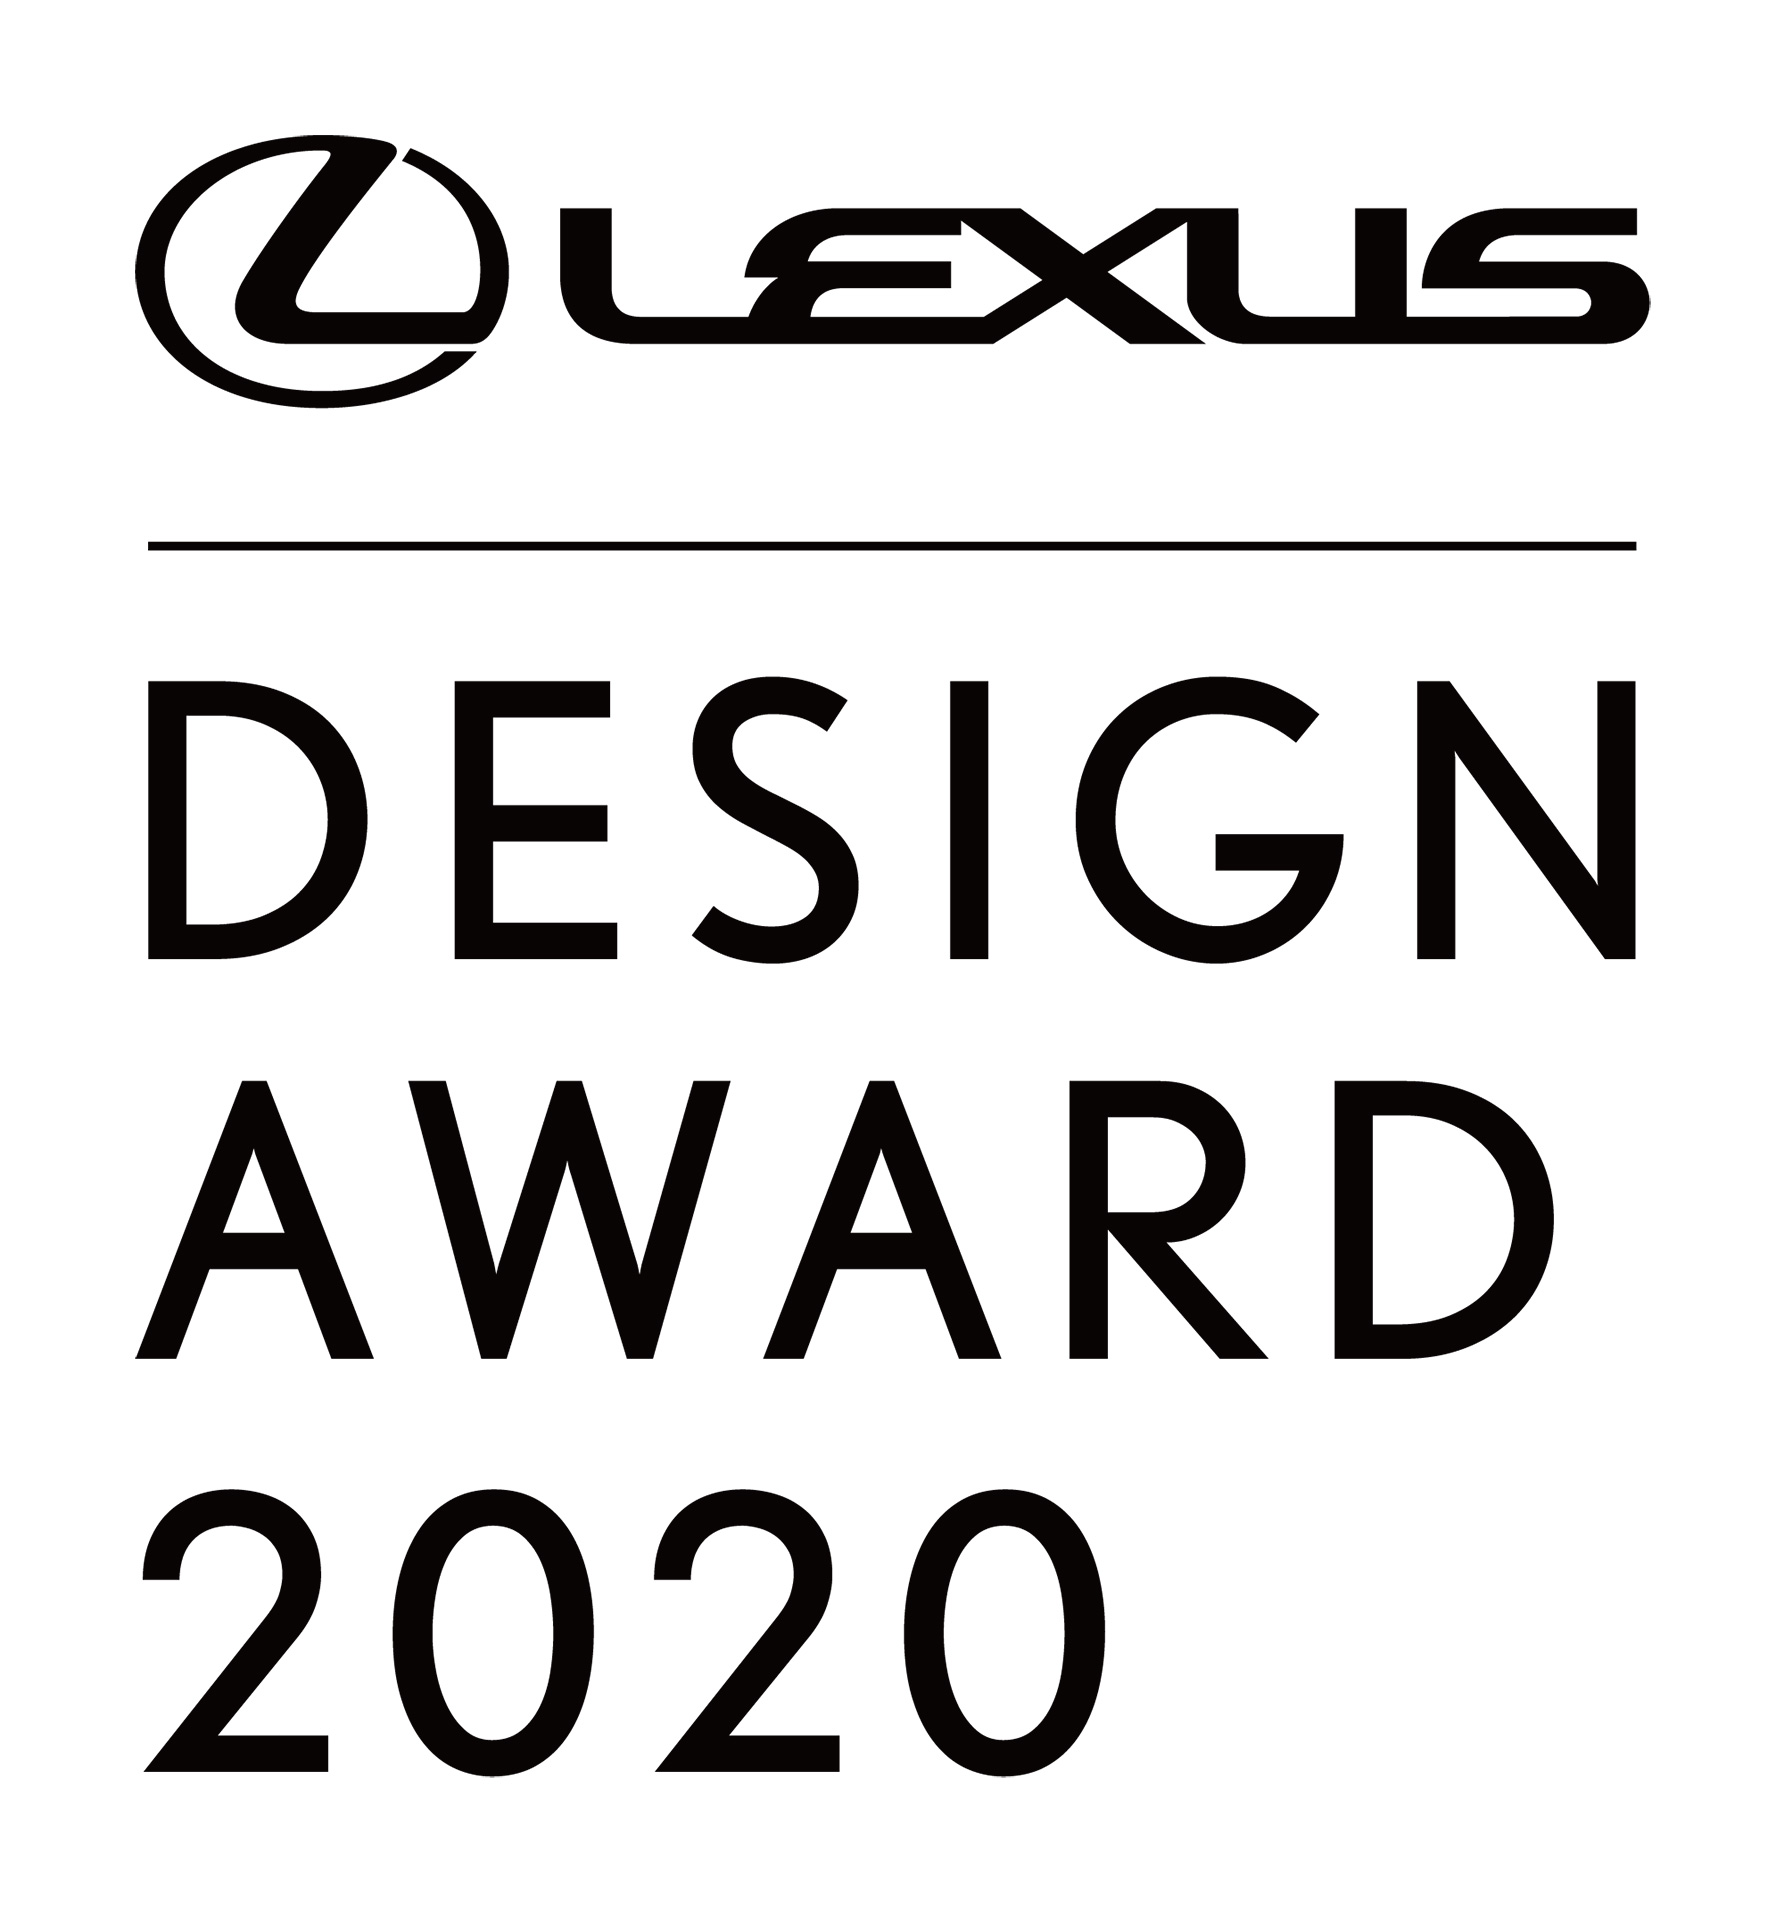 LEXUS DESIGN AWARD 2020: Call for Entries Now OpenHow passionate are you about designing for a better tomorrow? - Image 1